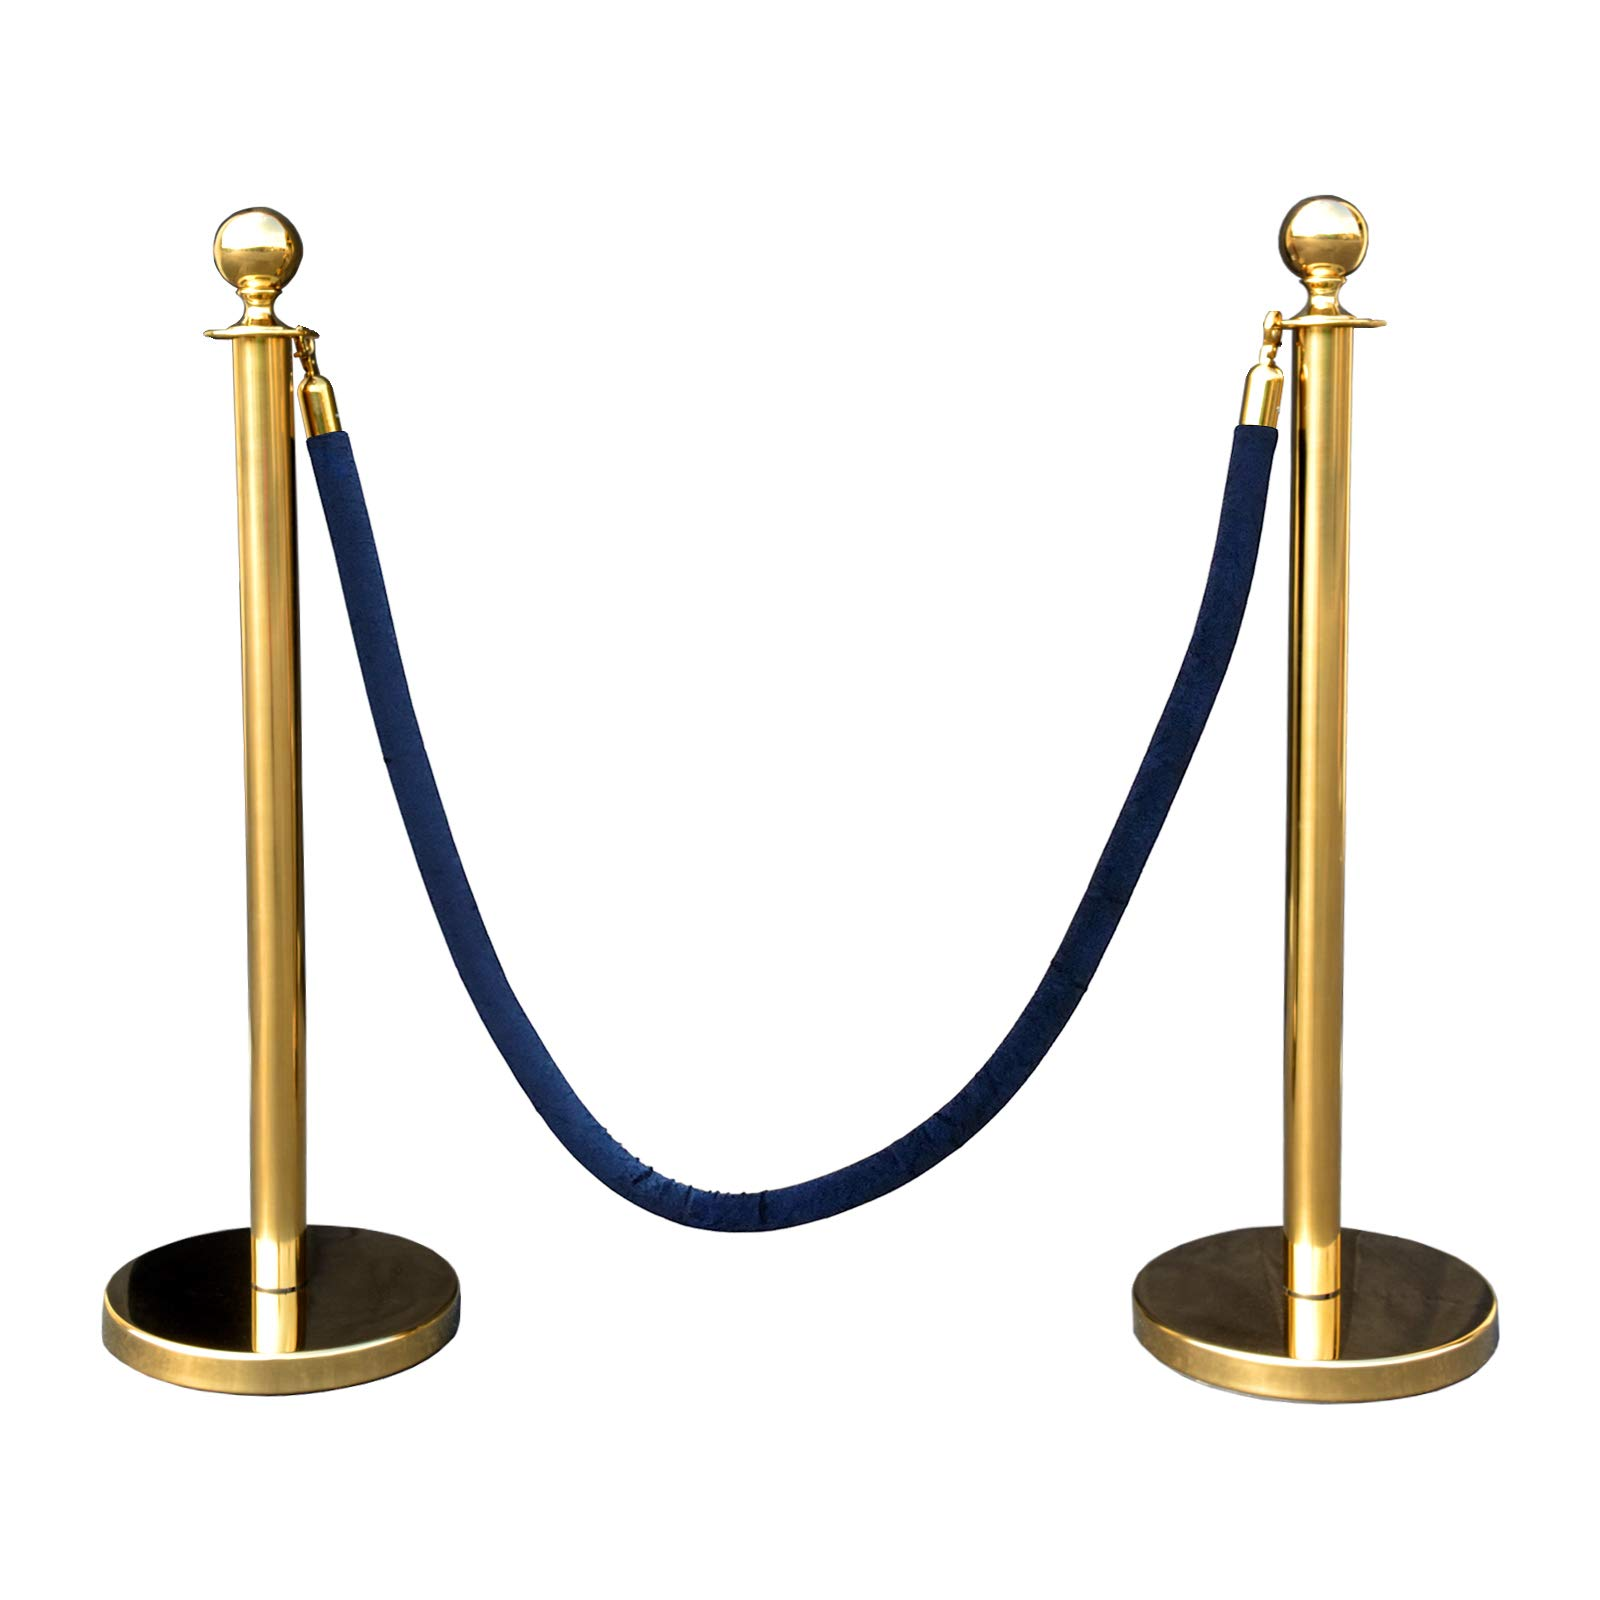 Gold Crown Top Decorative Rope Safety Queue Stanchion Barrier in 3 pcs Set, VIP Crowd Control (72'' Blue Velvet) by Crowd Control Center